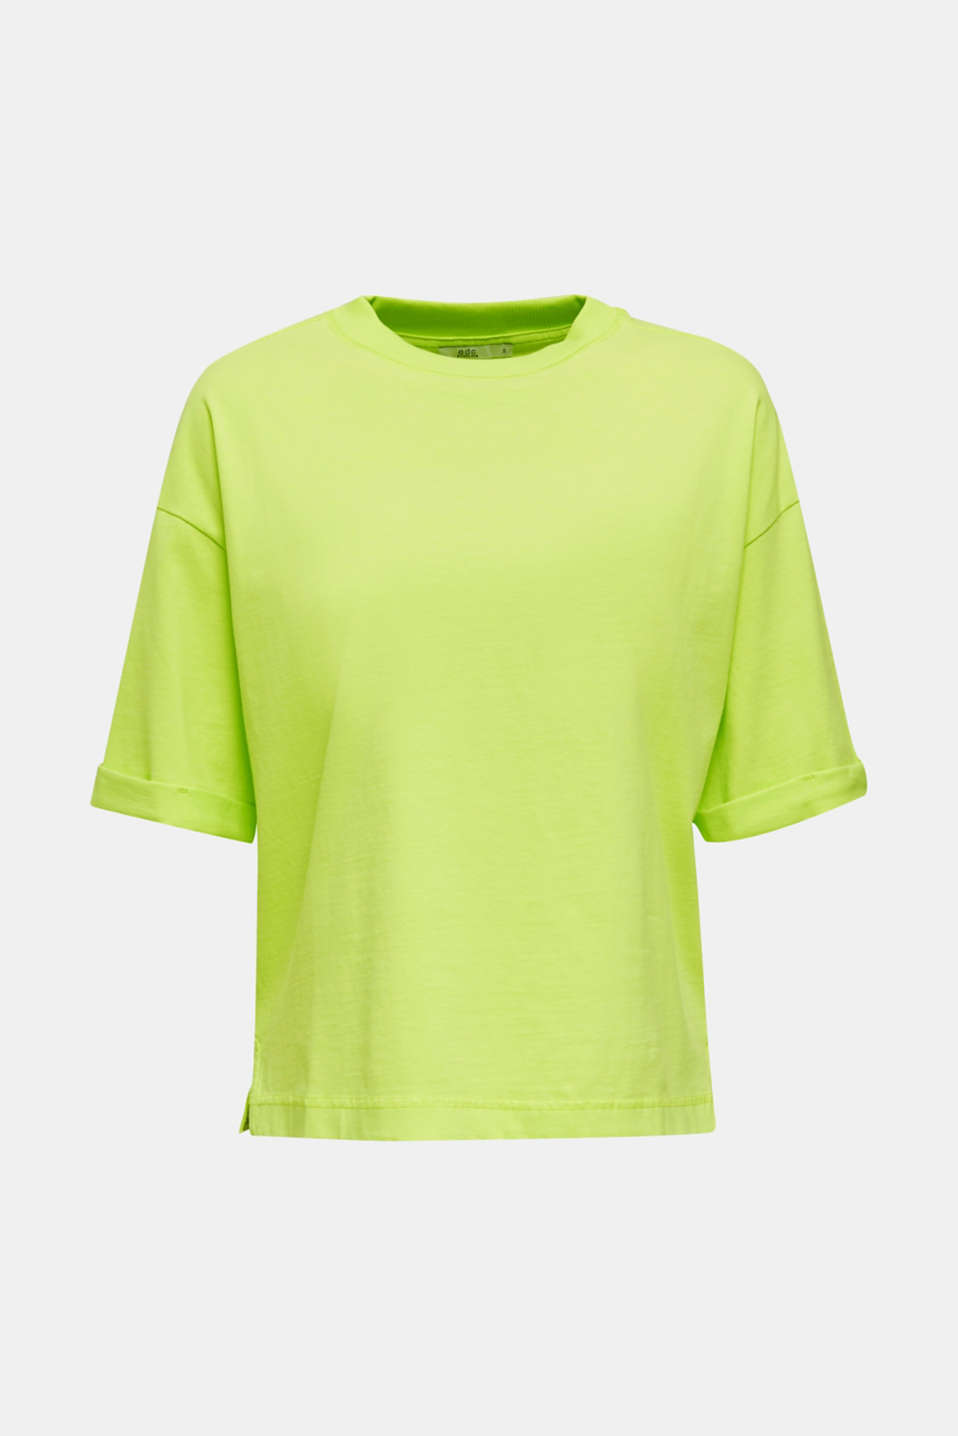 NEON top with wide sleeves, 100% cotton, LIME YELLOW, detail image number 6